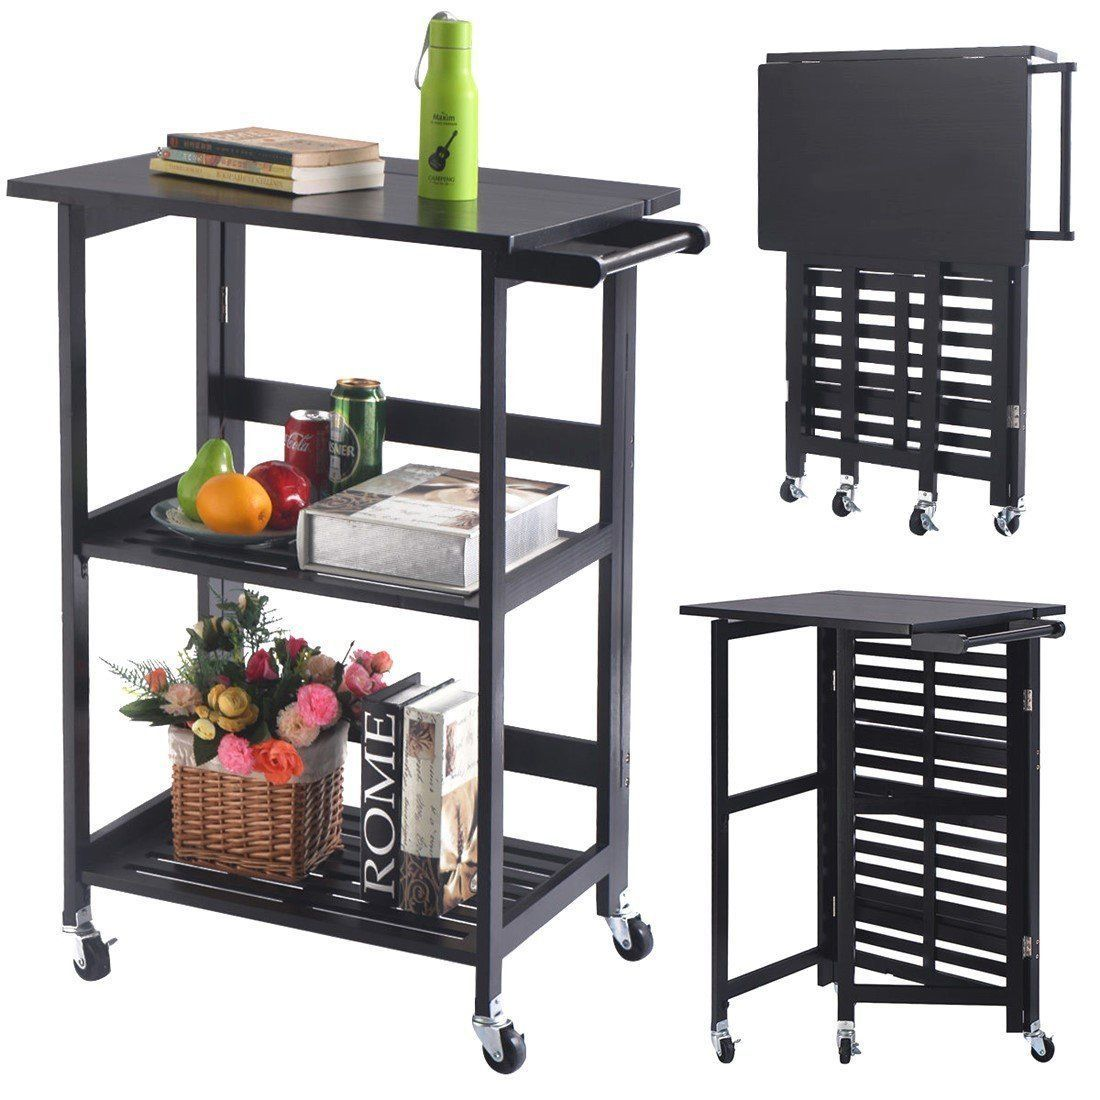 Foldable wood kitchen cart utility serving rolling cart wcasters